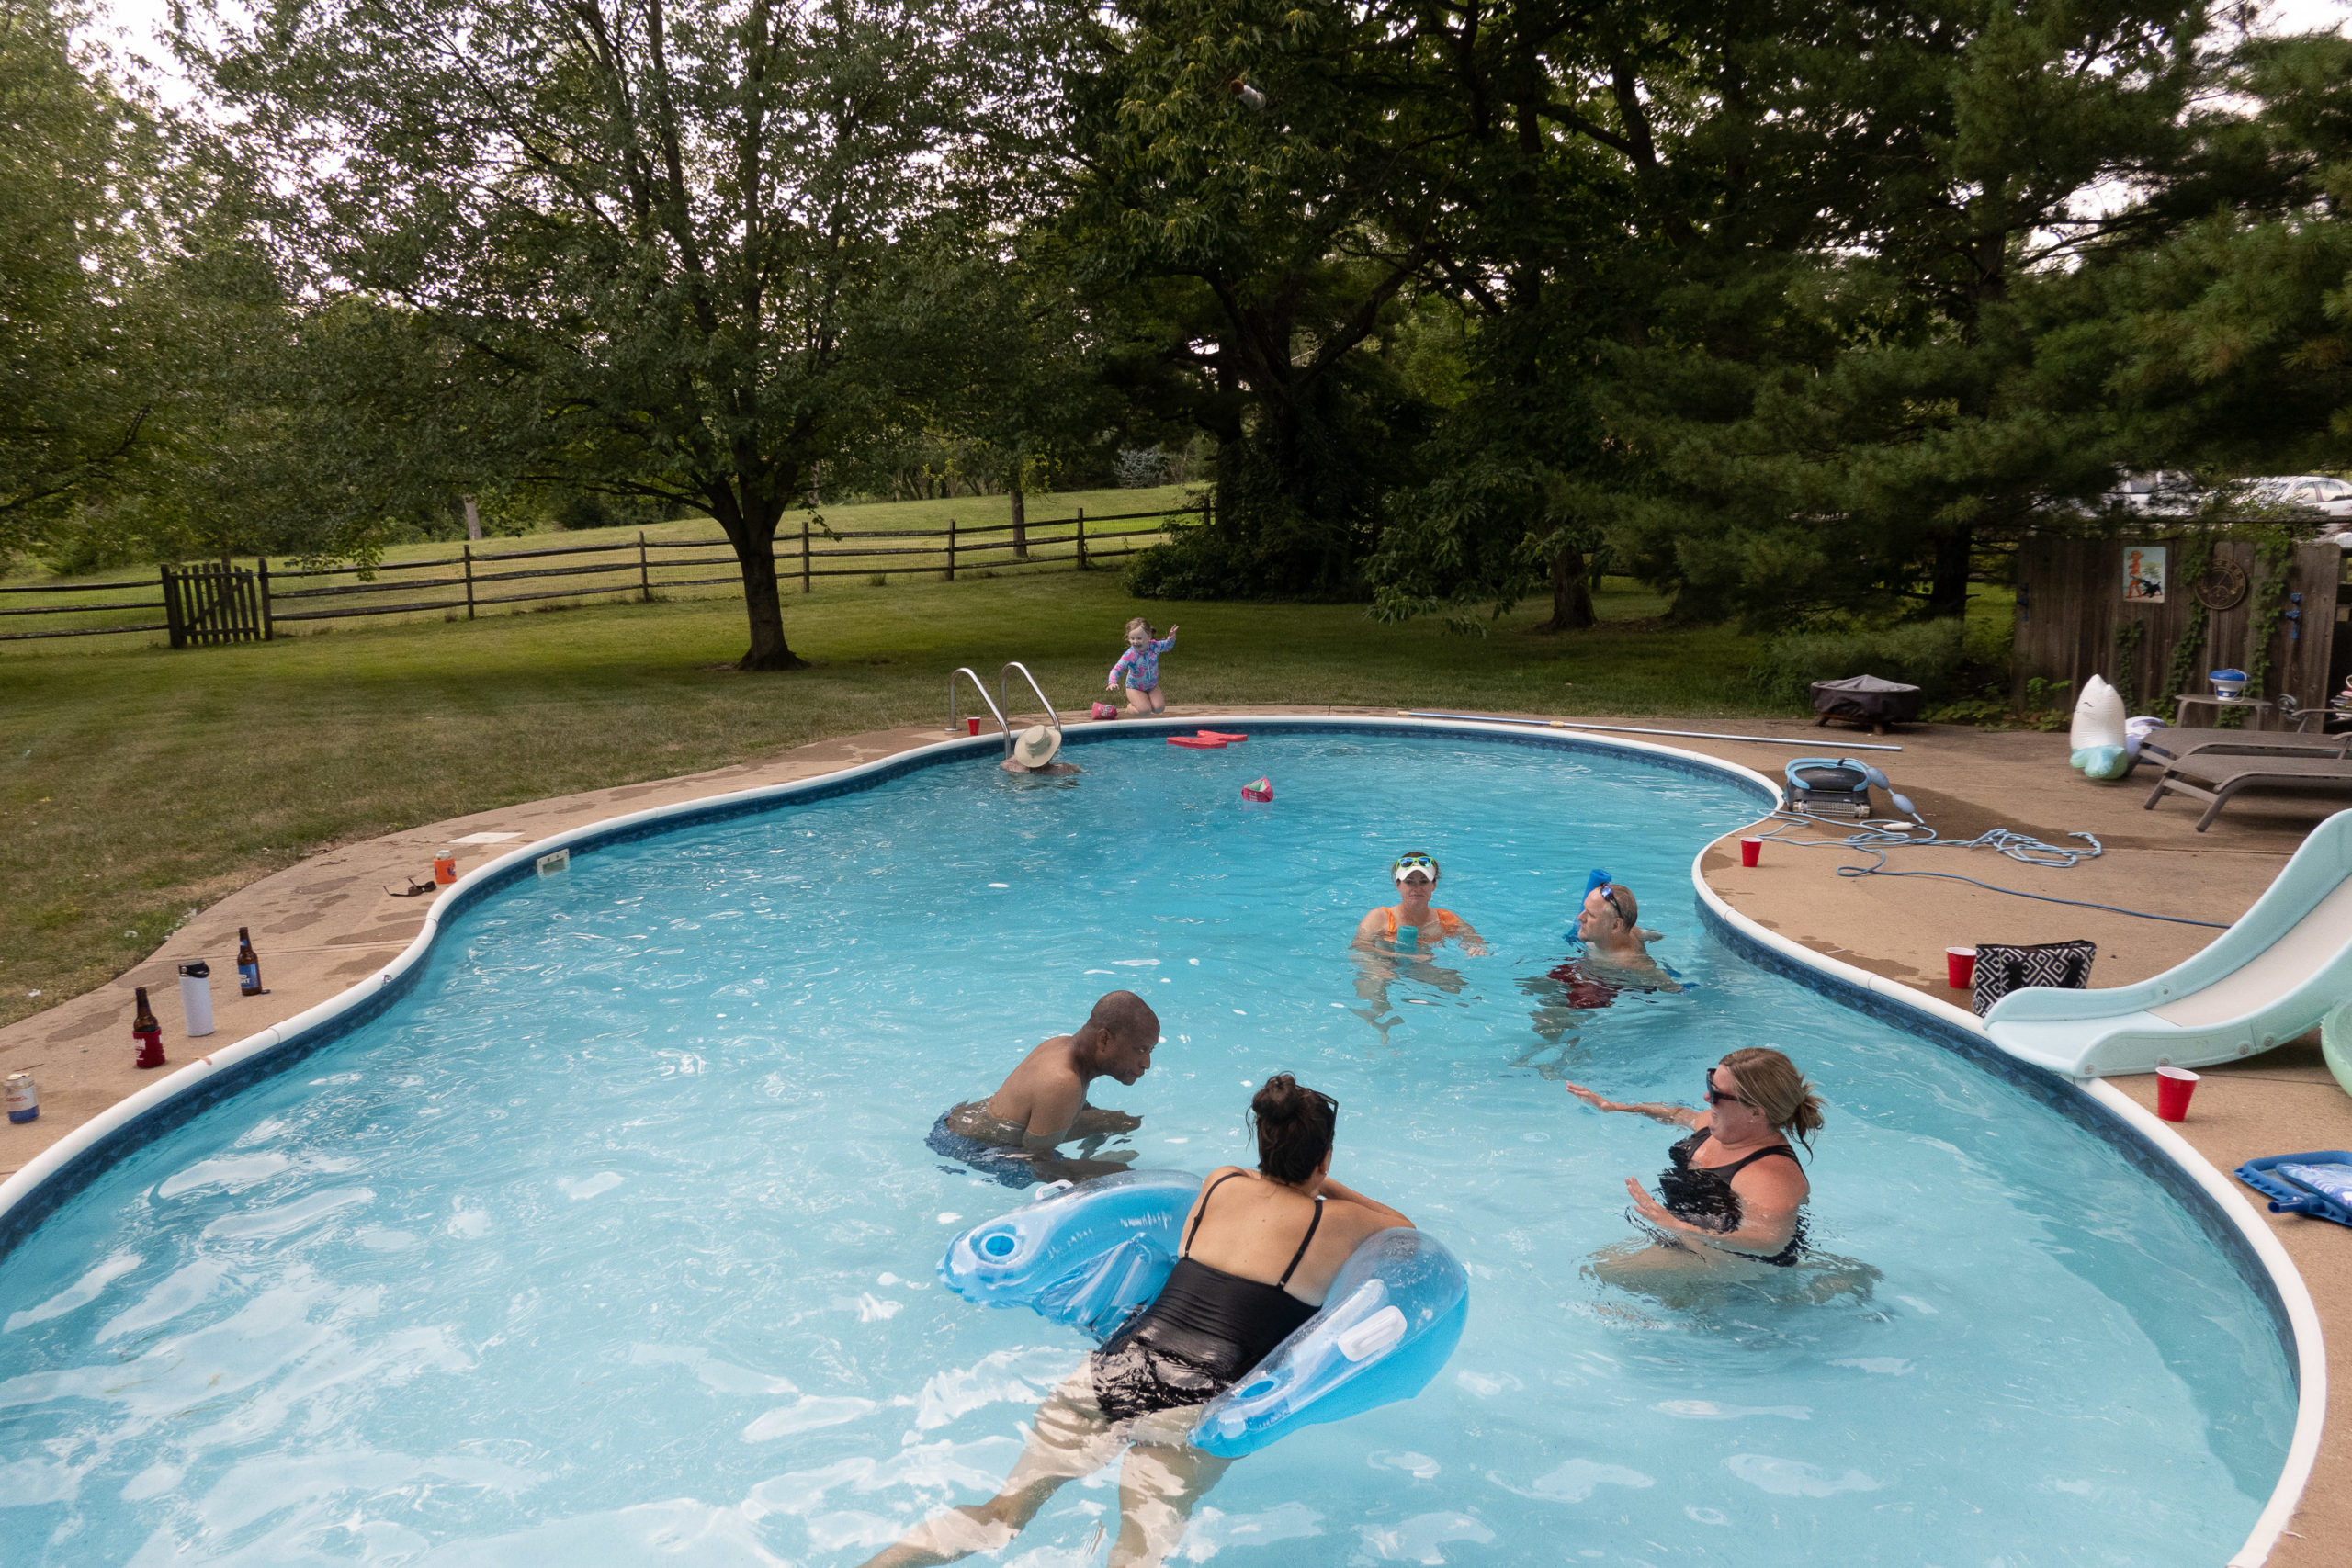 A group of folks hang out in a pool while a young girl jumps into it in the background